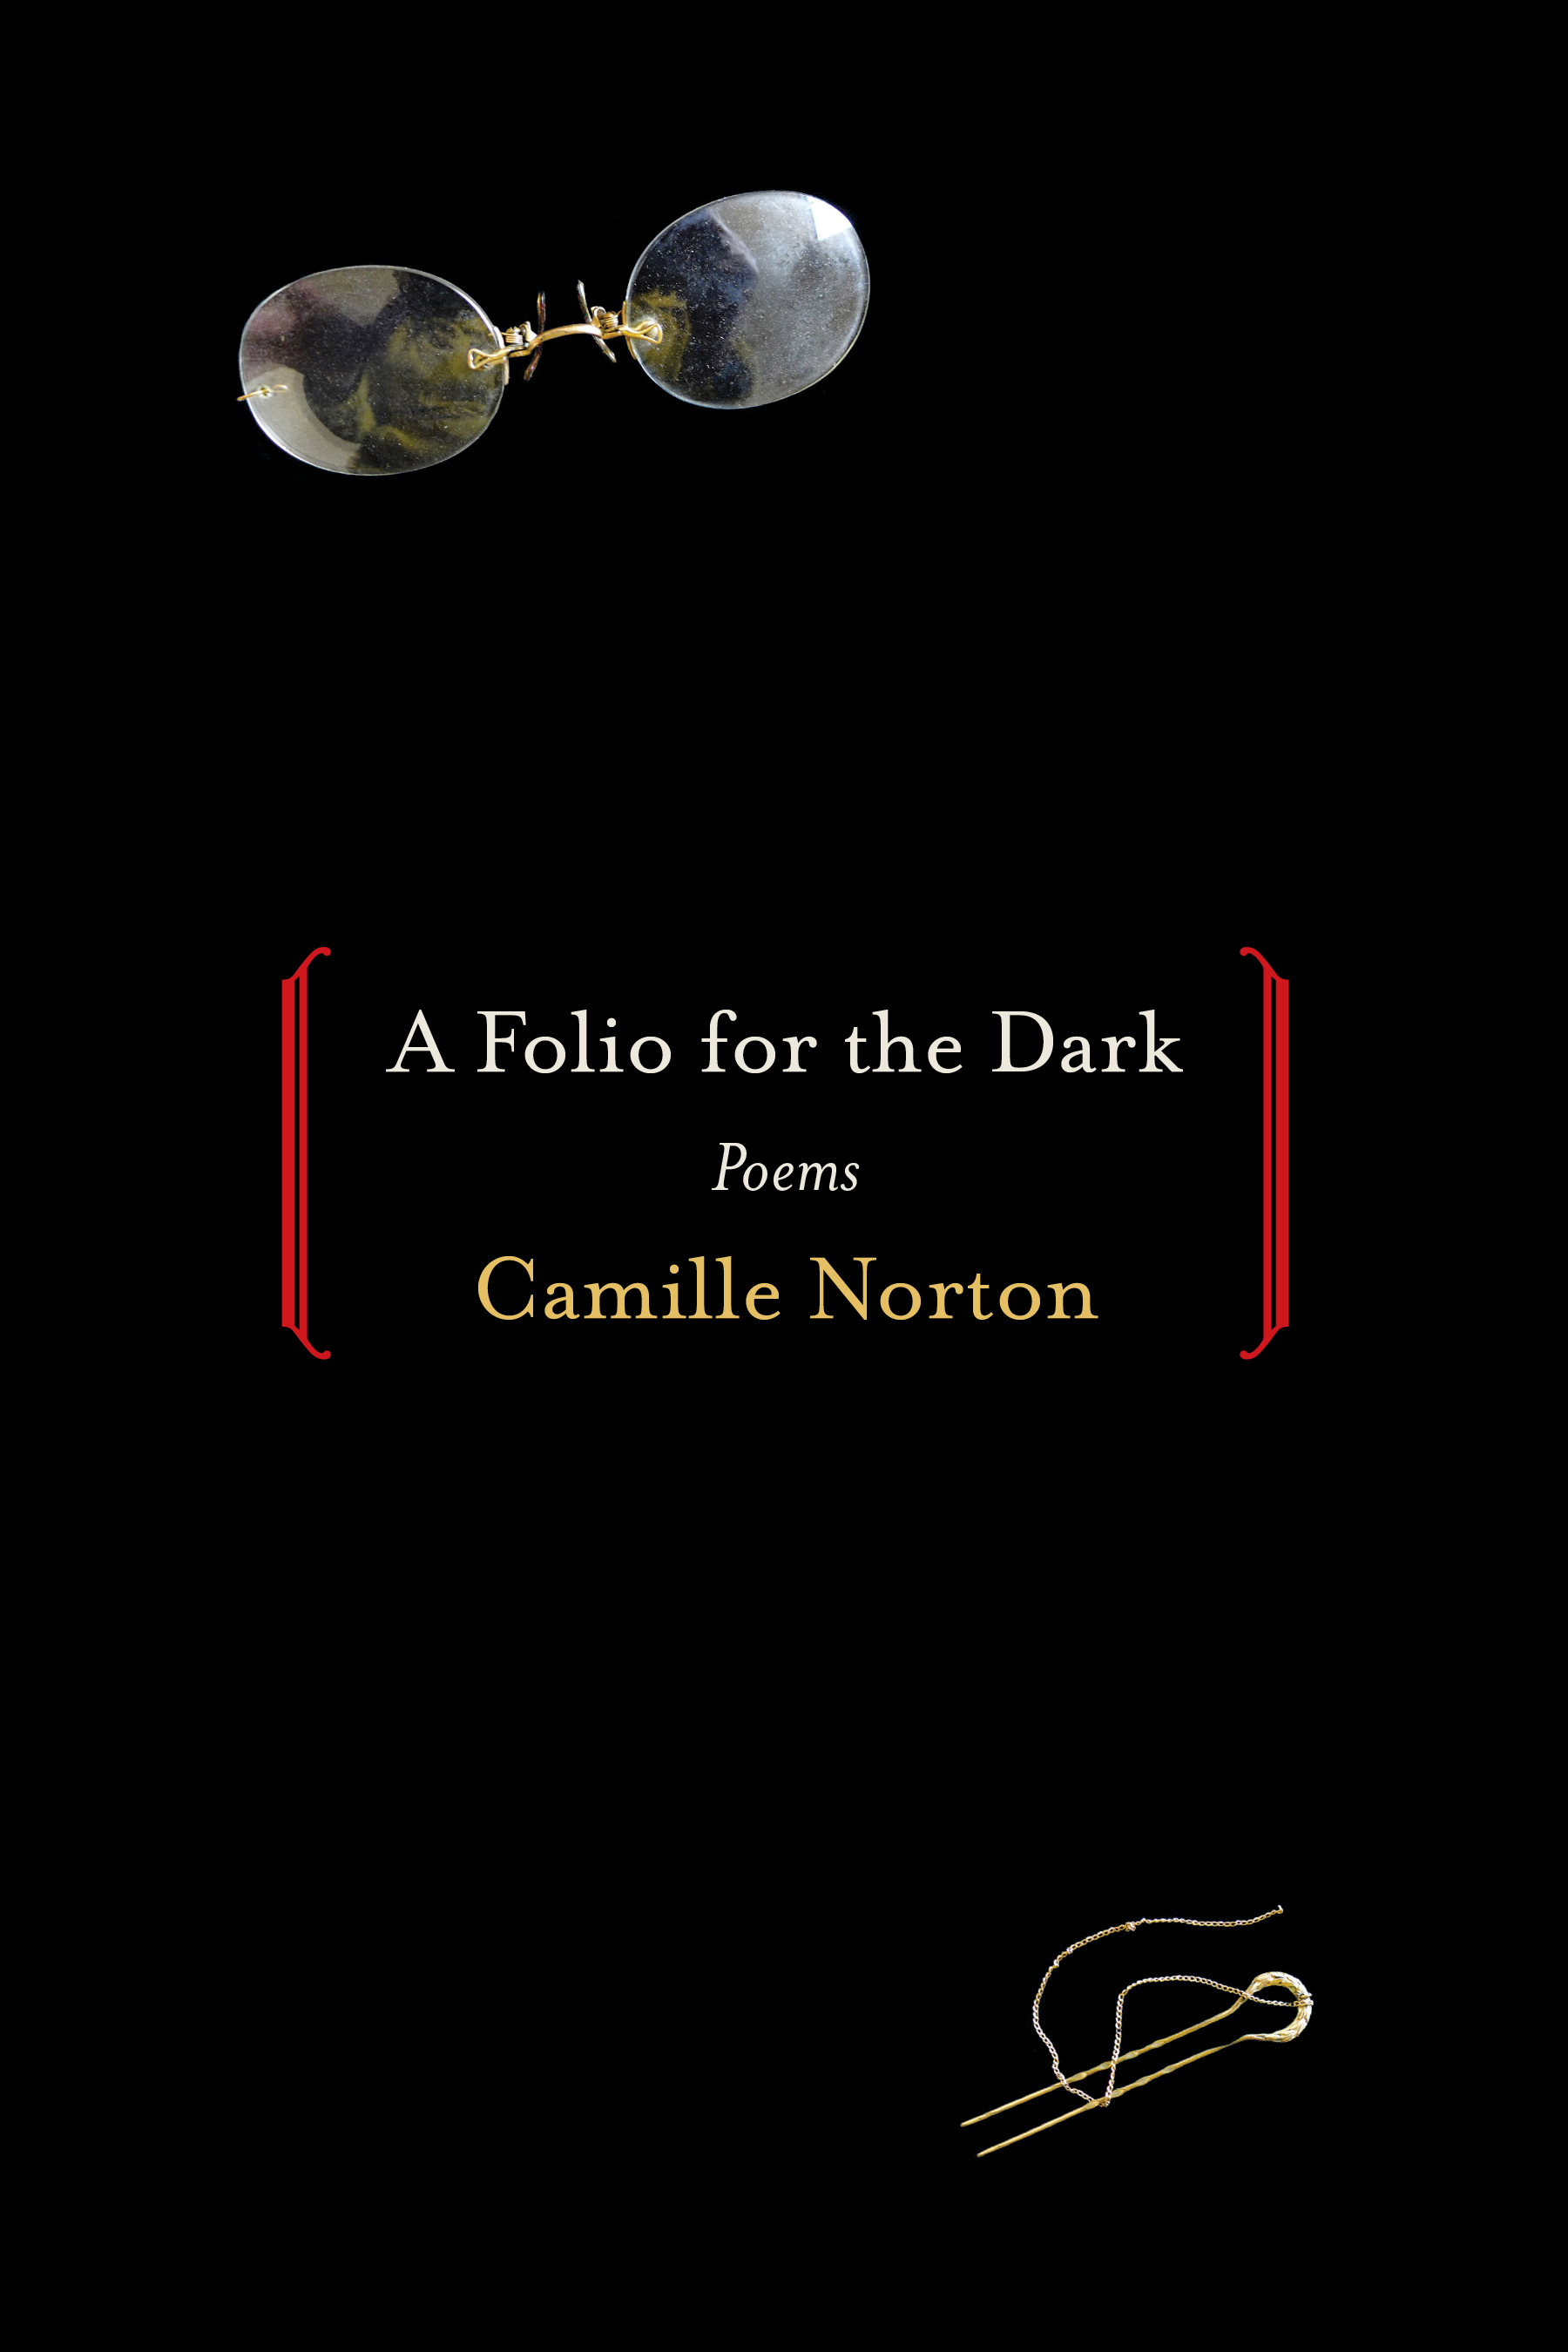 A Folio for the Dark: Poems